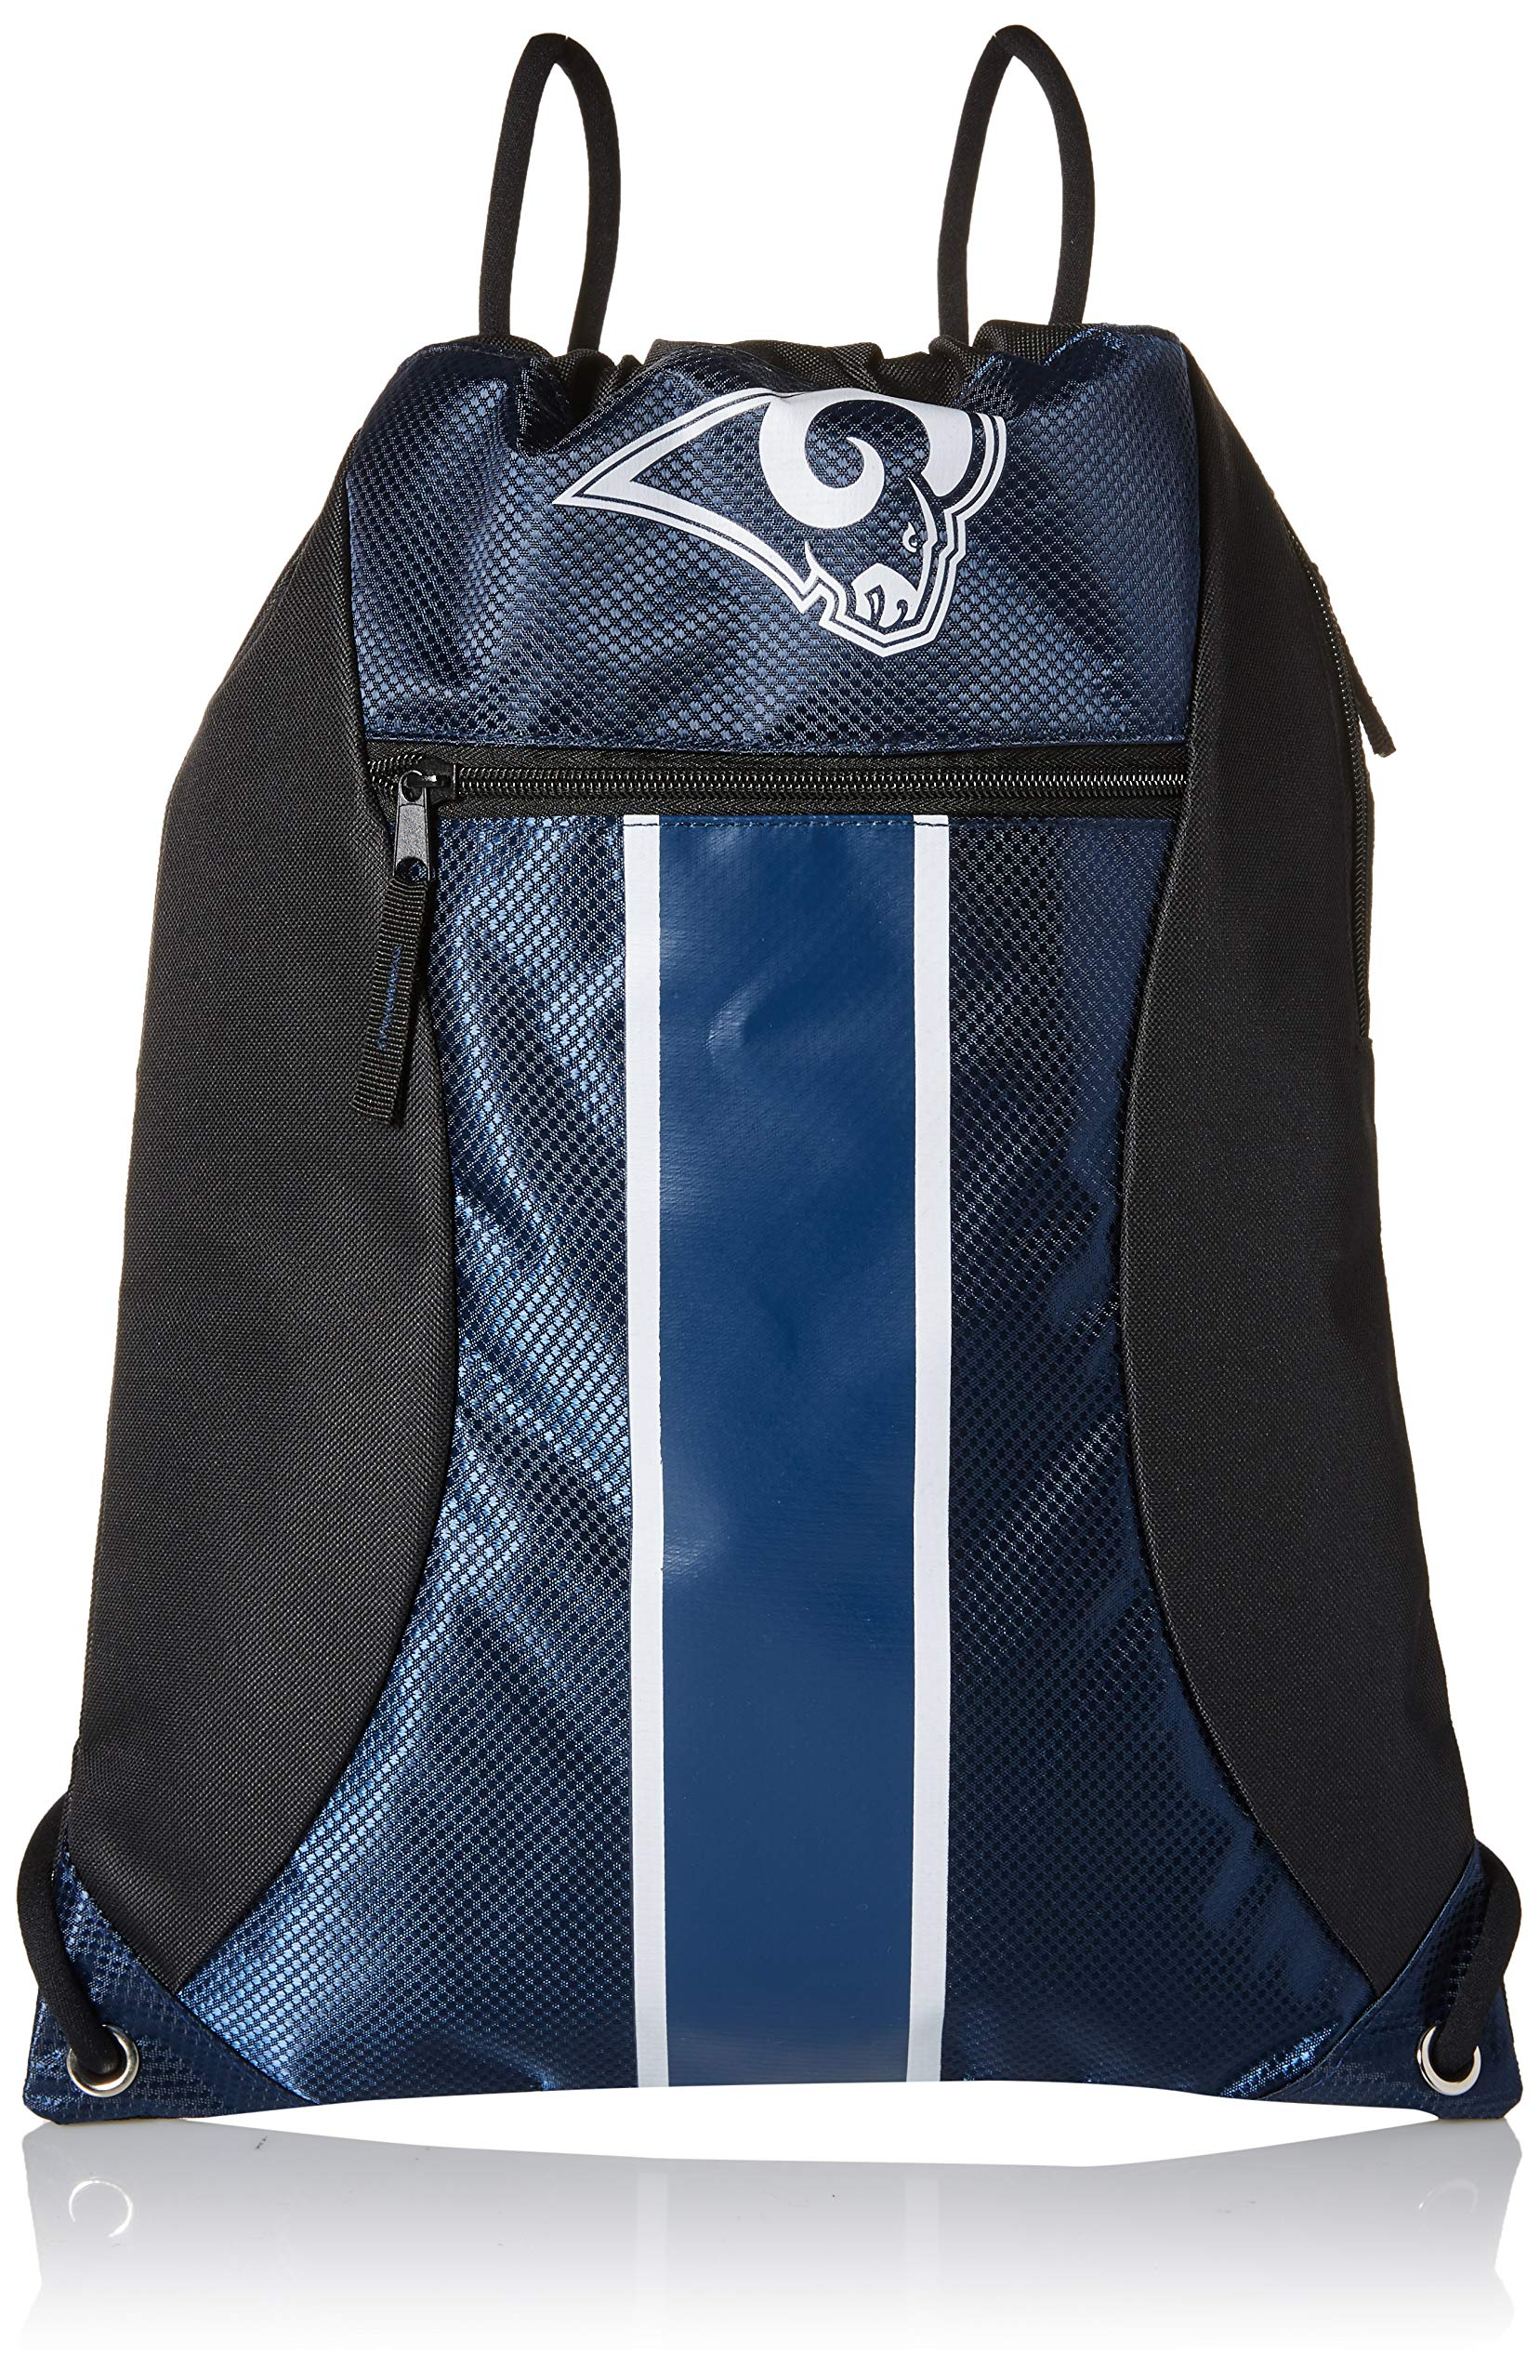 Los Angeles Rams Big Stripe Zipper Drawstring Backpack